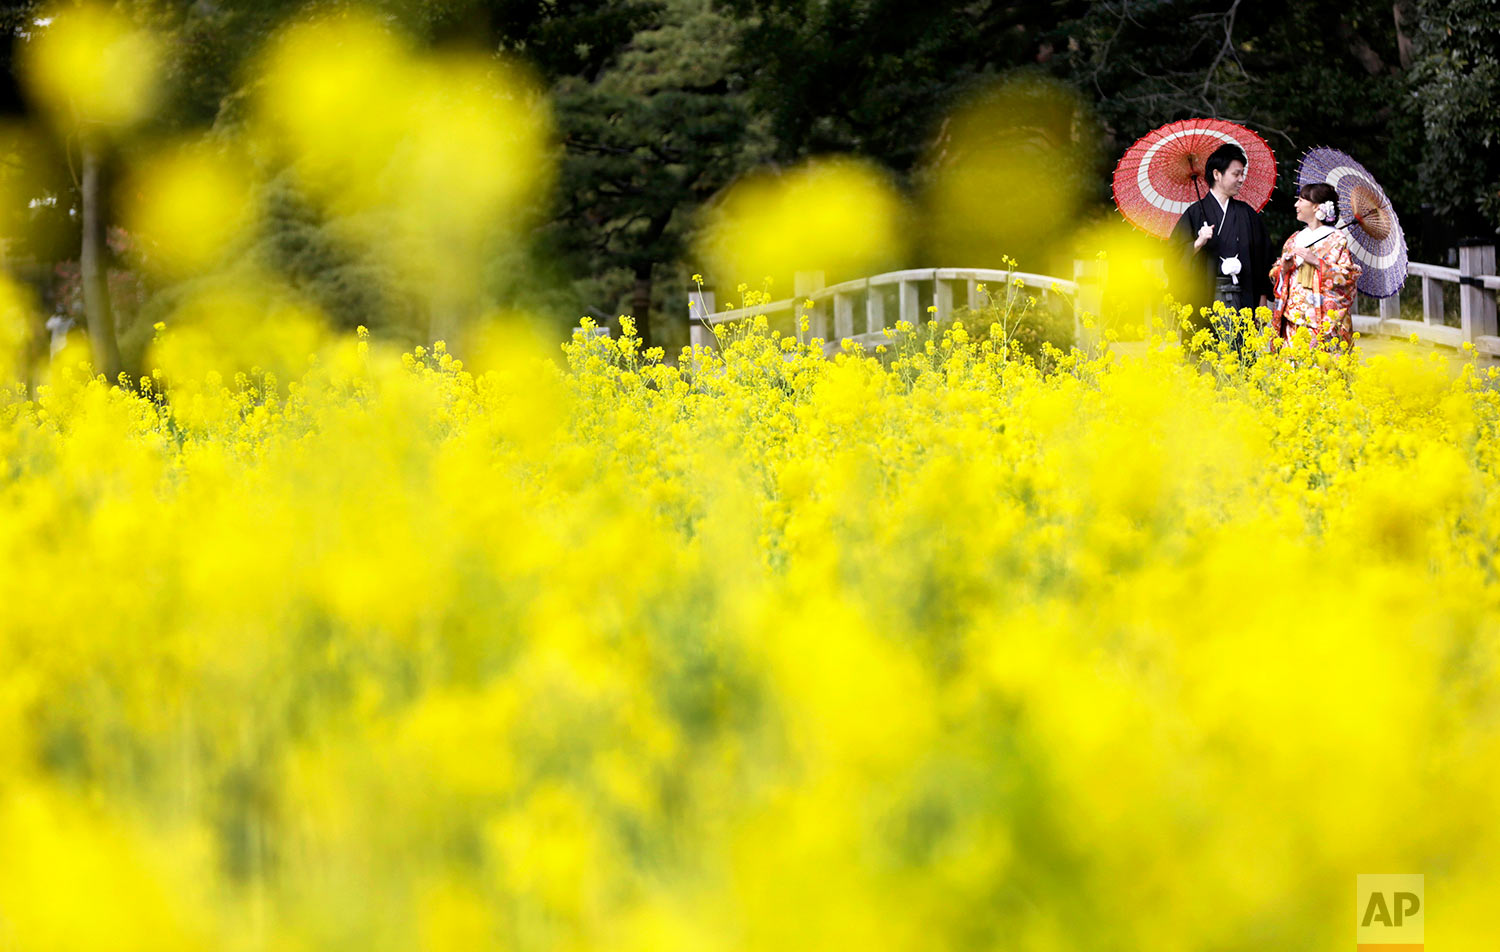 A couple wearing Japanese traditional kimonos pose for a wedding photo by a rapeseed oil field at Hamarikyu Garden in Tokyo, Friday, Feb. 10, 2017. The flowers are expected to remain in full bloom until the end of March. (AP Photo/Eugene Hoshiko)